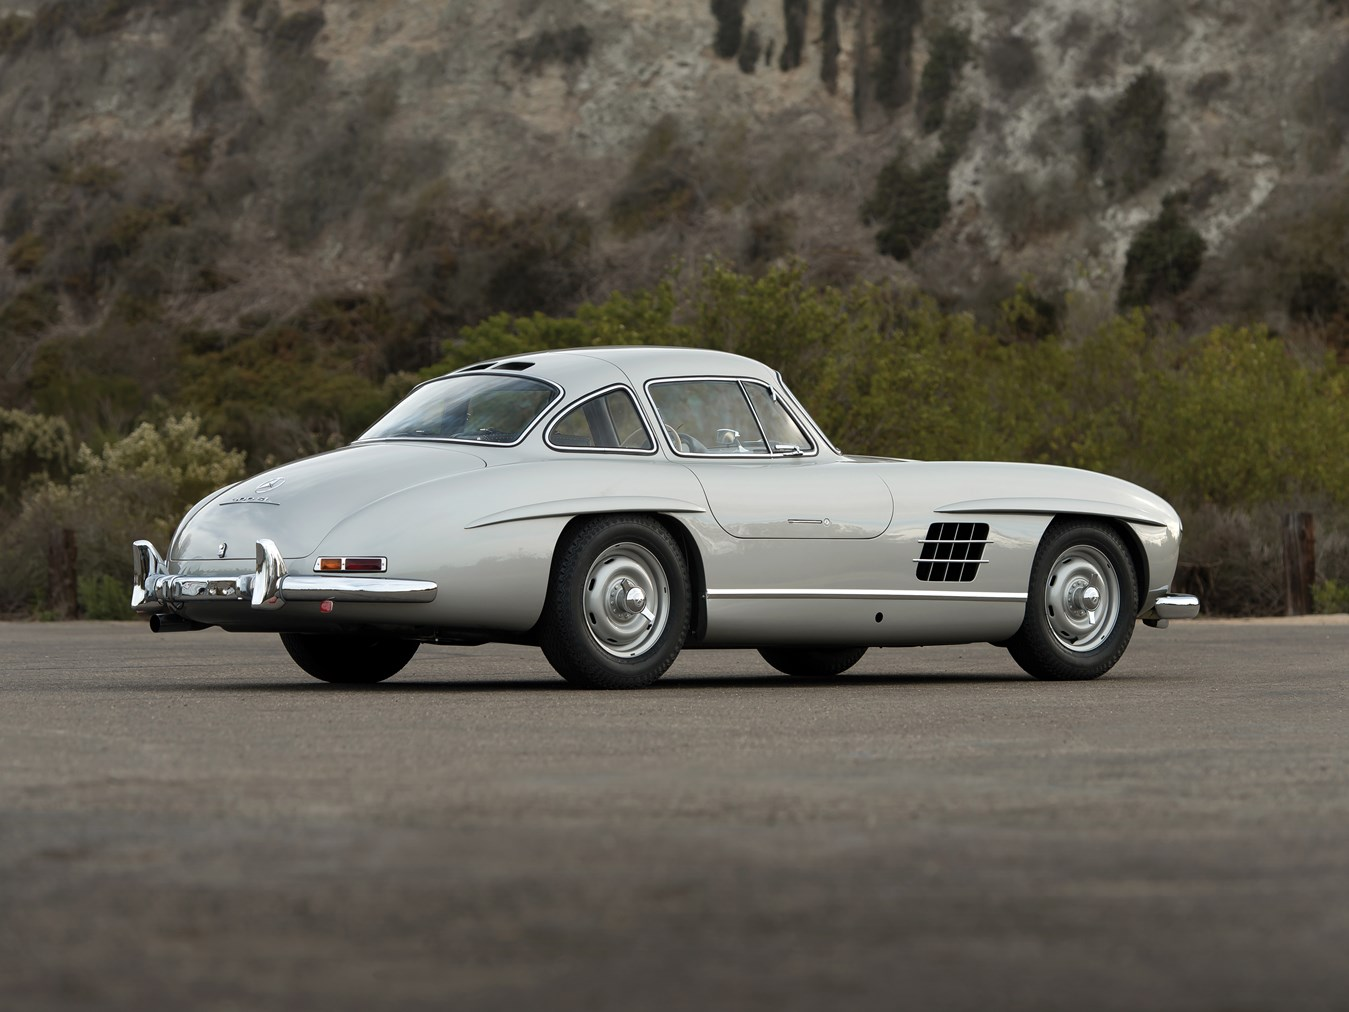 1955 Mercedes-Benz 300 SL Gullwing rear 3/4